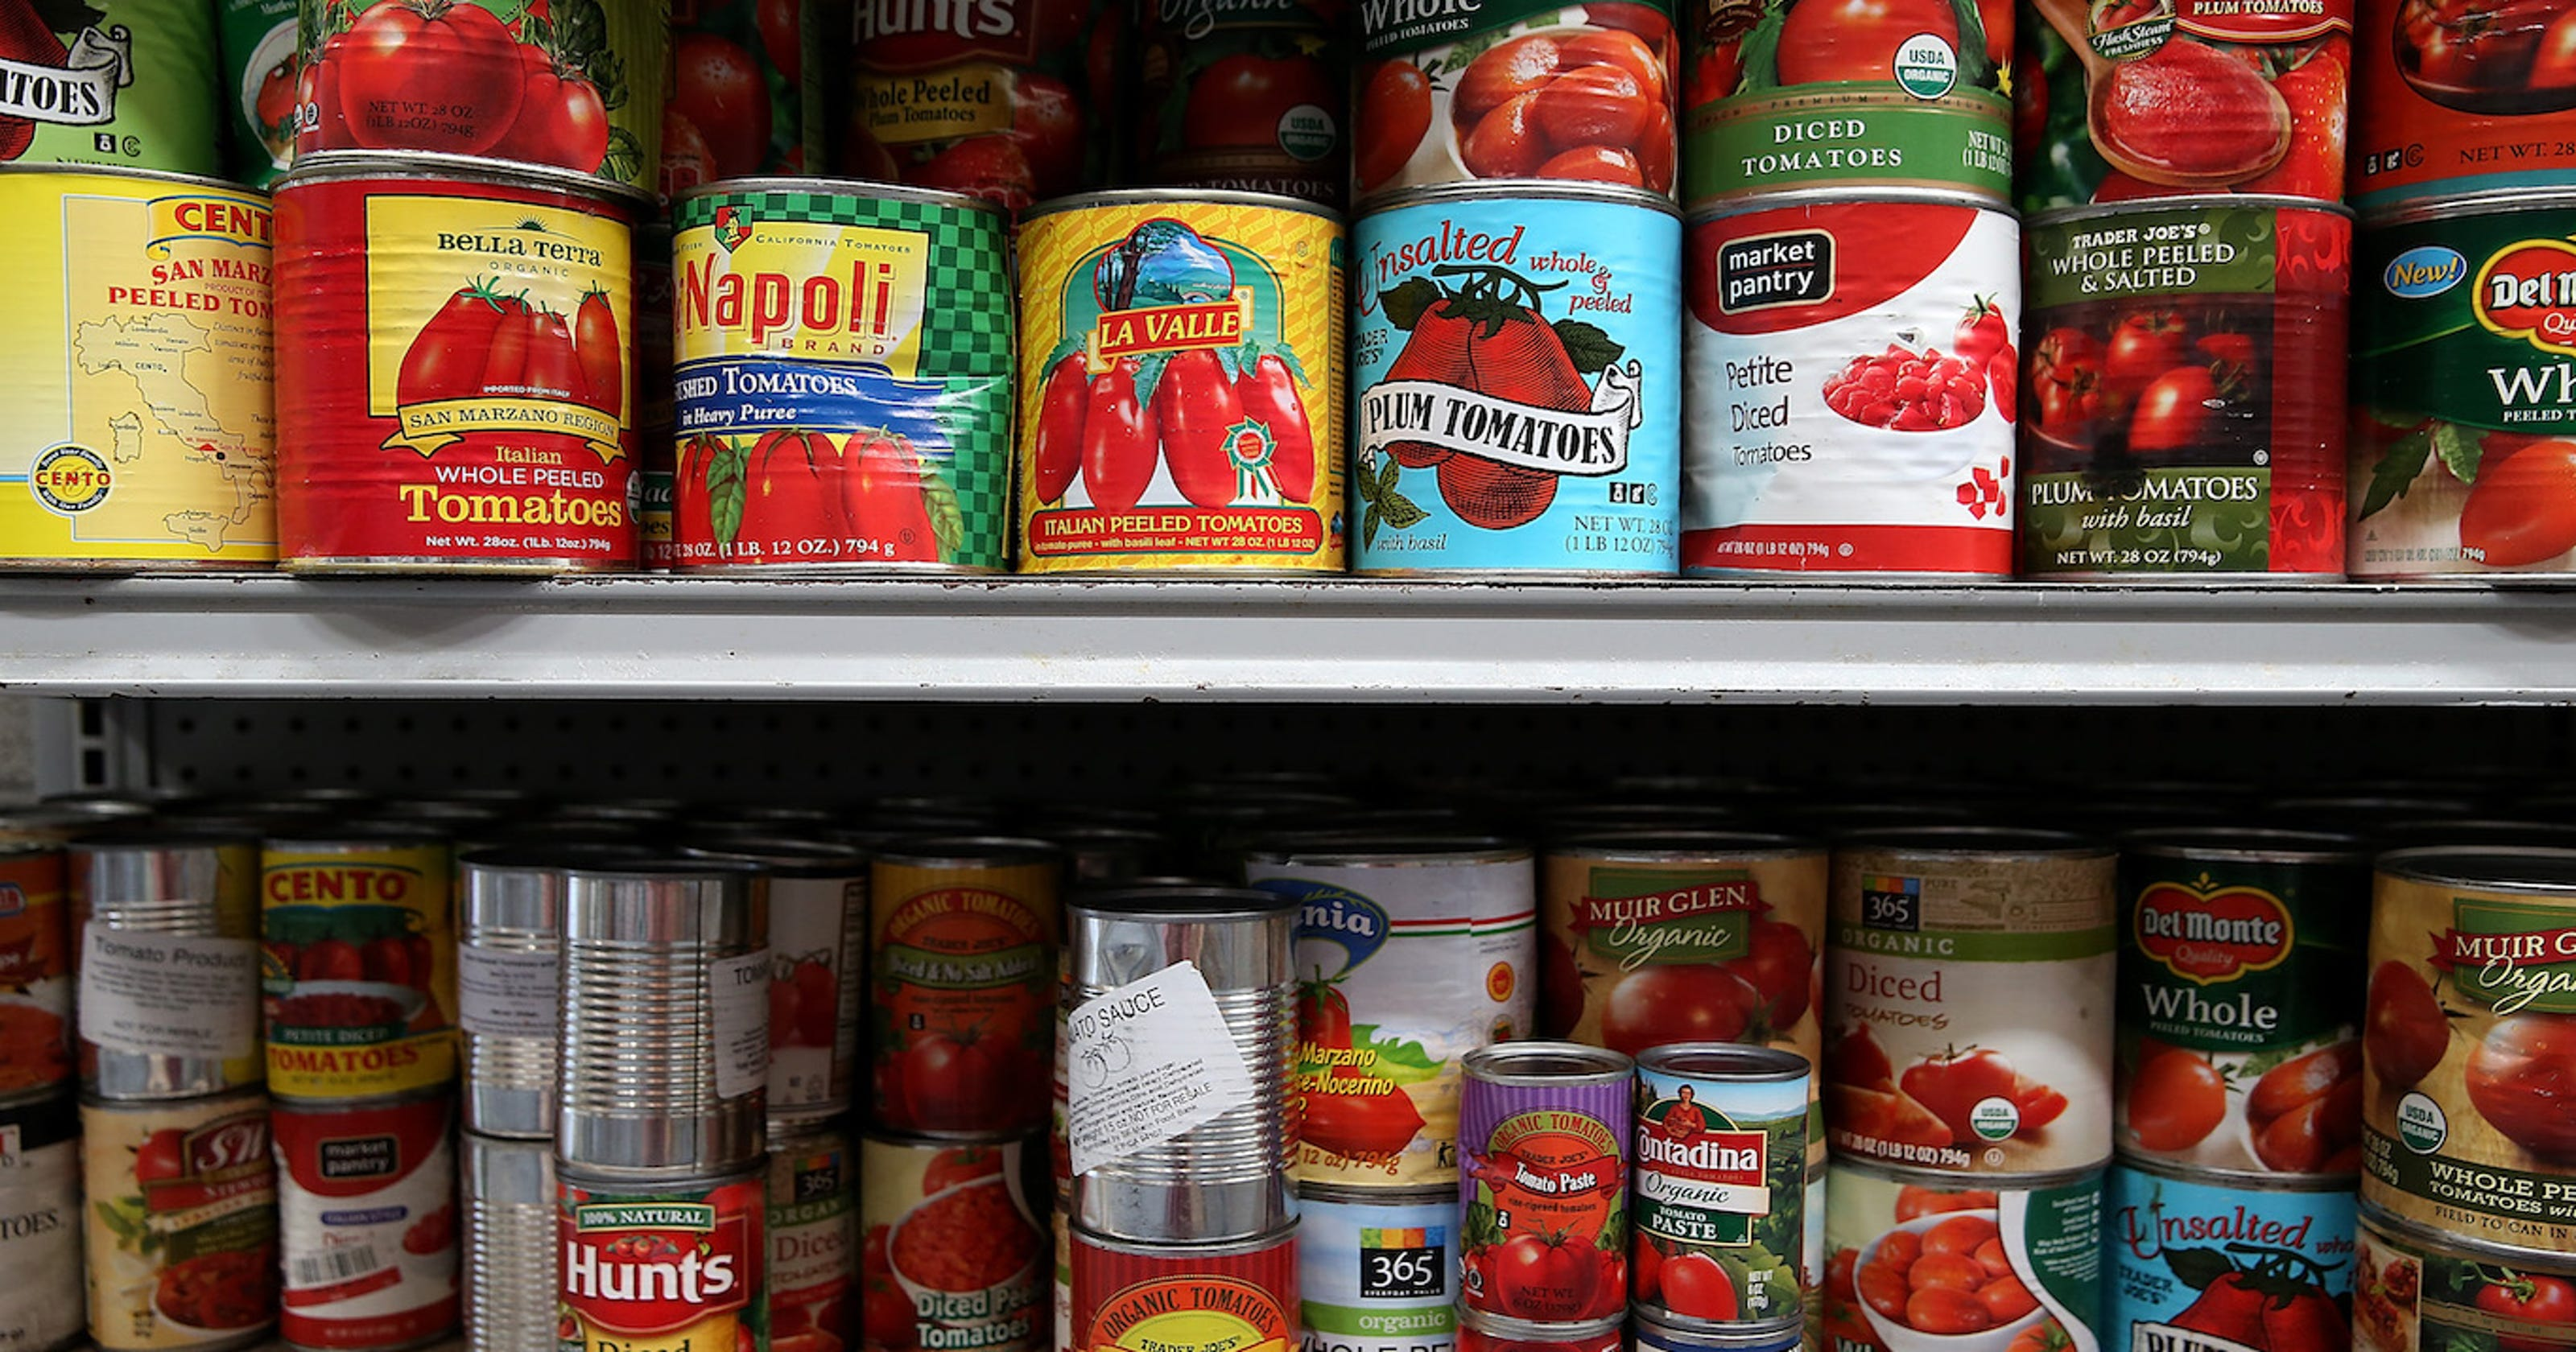 70 US mayors urge Trump administration to 'abandon' proposed changes to federal food stamp program